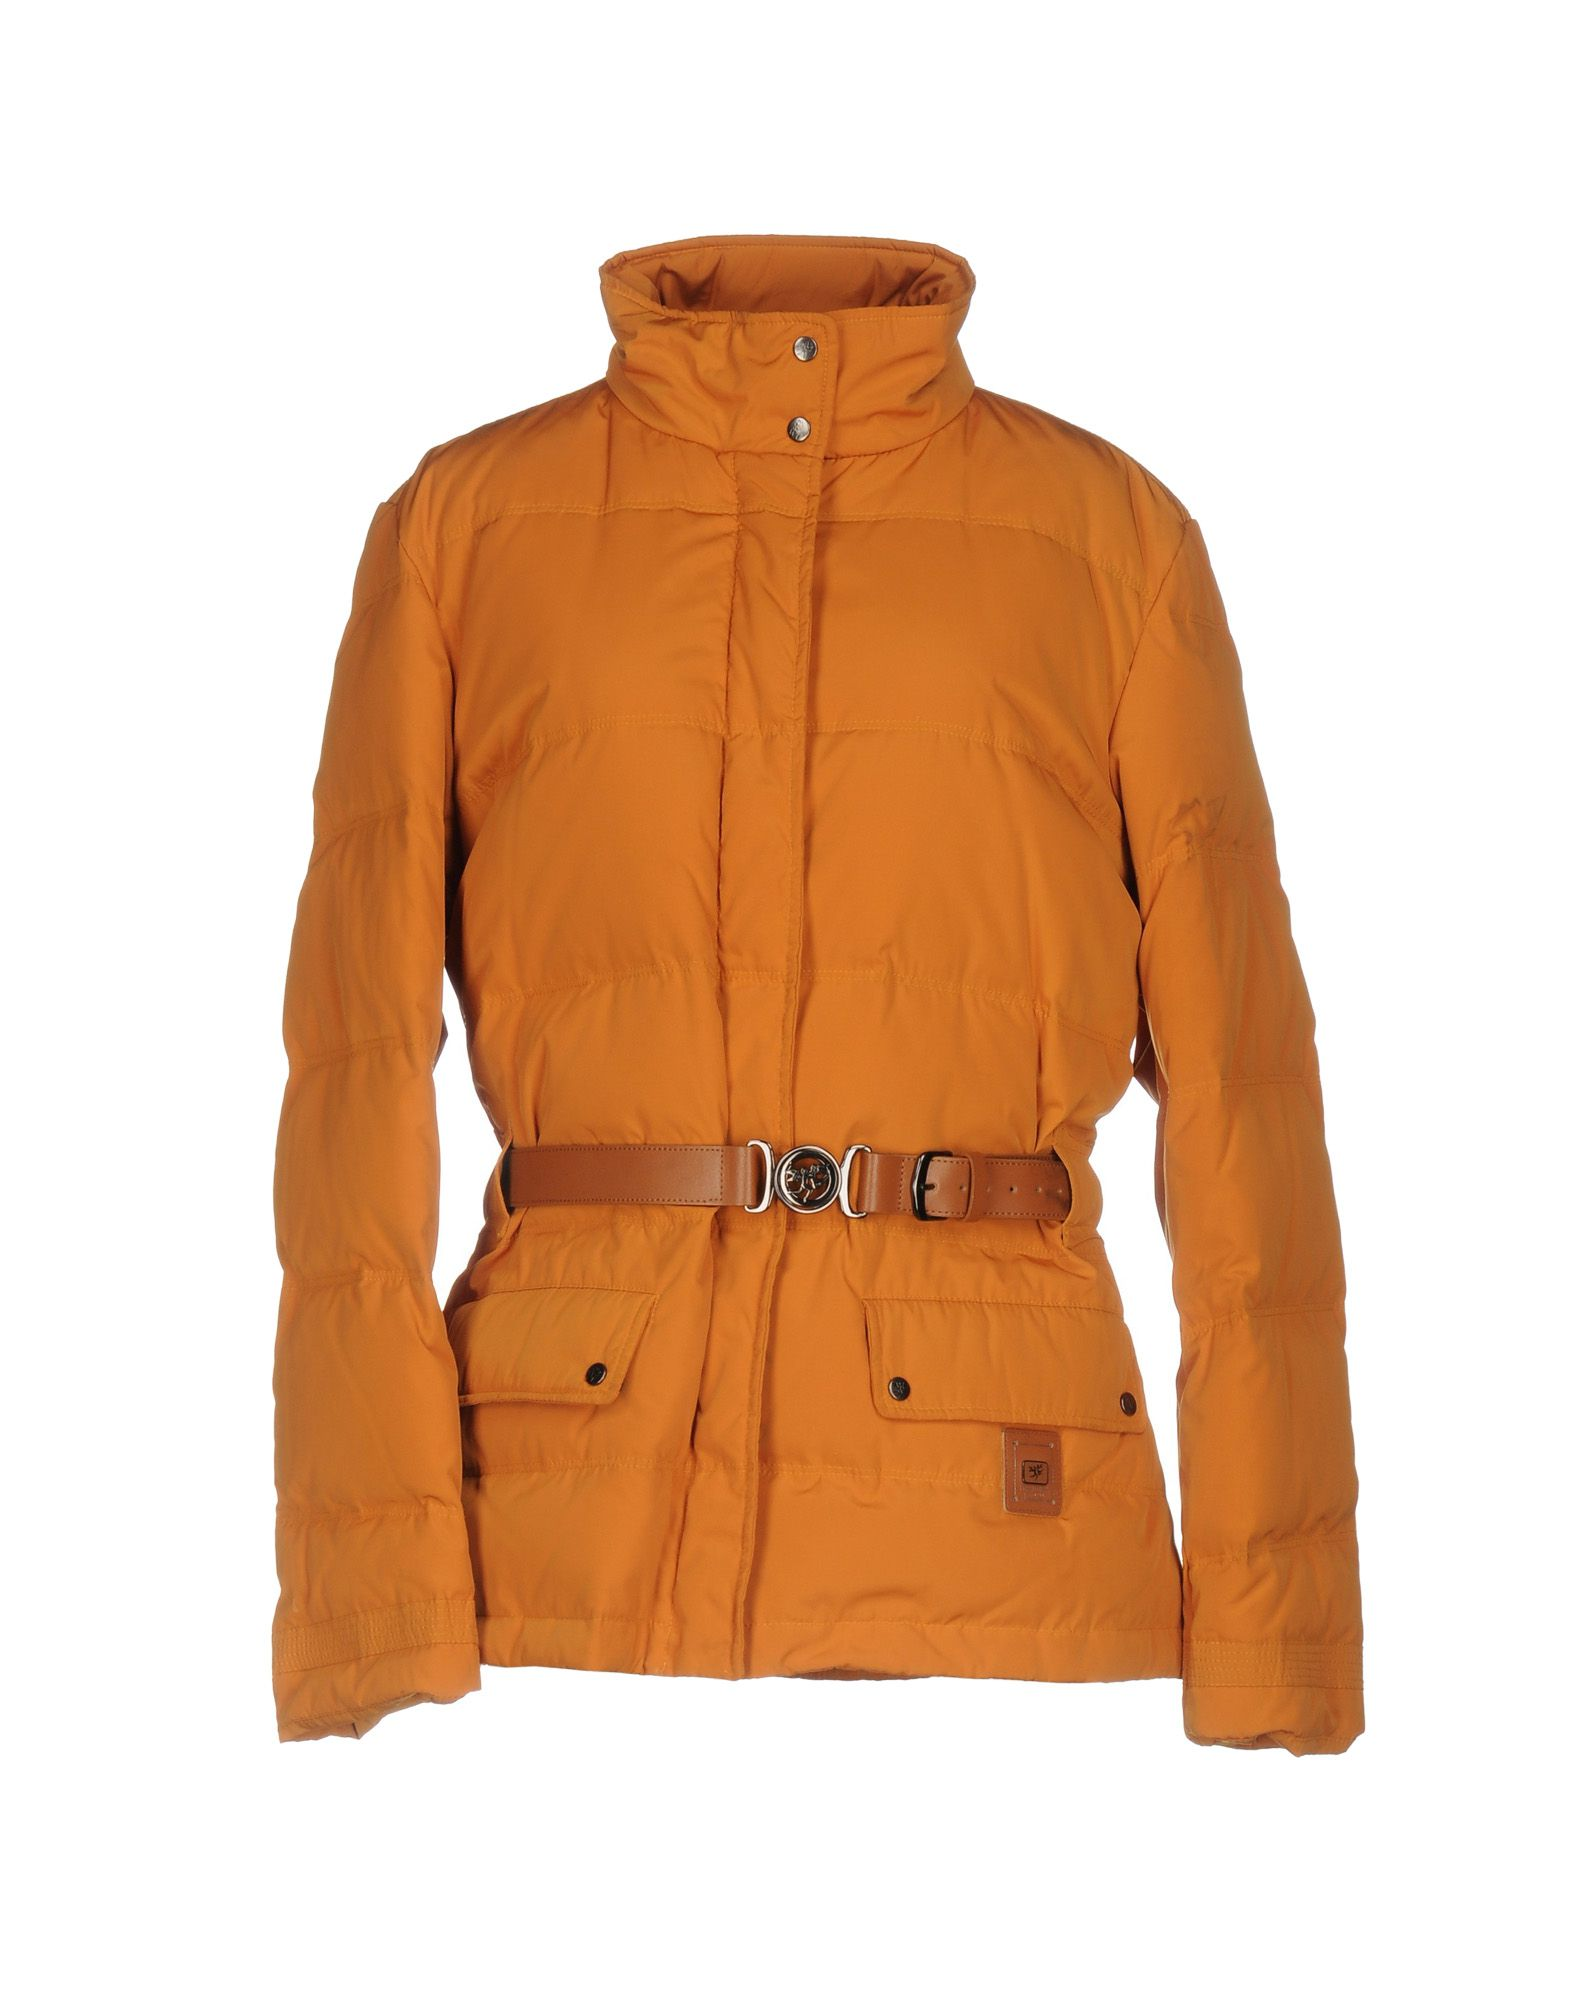 PIERO GUIDI Damen Steppjacke Farbe Orange Größe 6